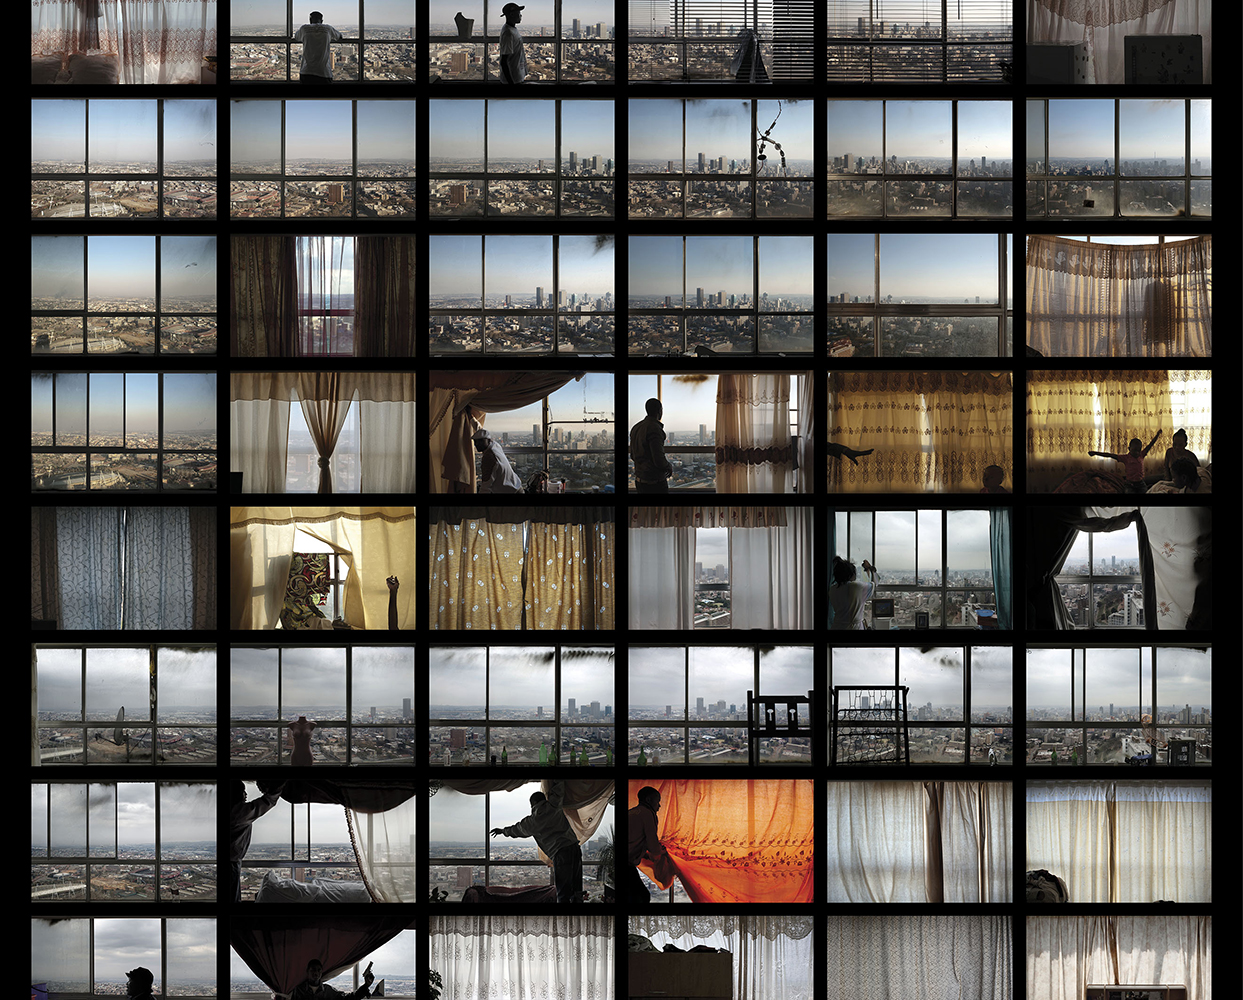 A section of our combined lightbox that puts together a photograph from every window in the building. The photographs are arranged exactly true to the architecture, flat-by-flat and floor-by-floor.